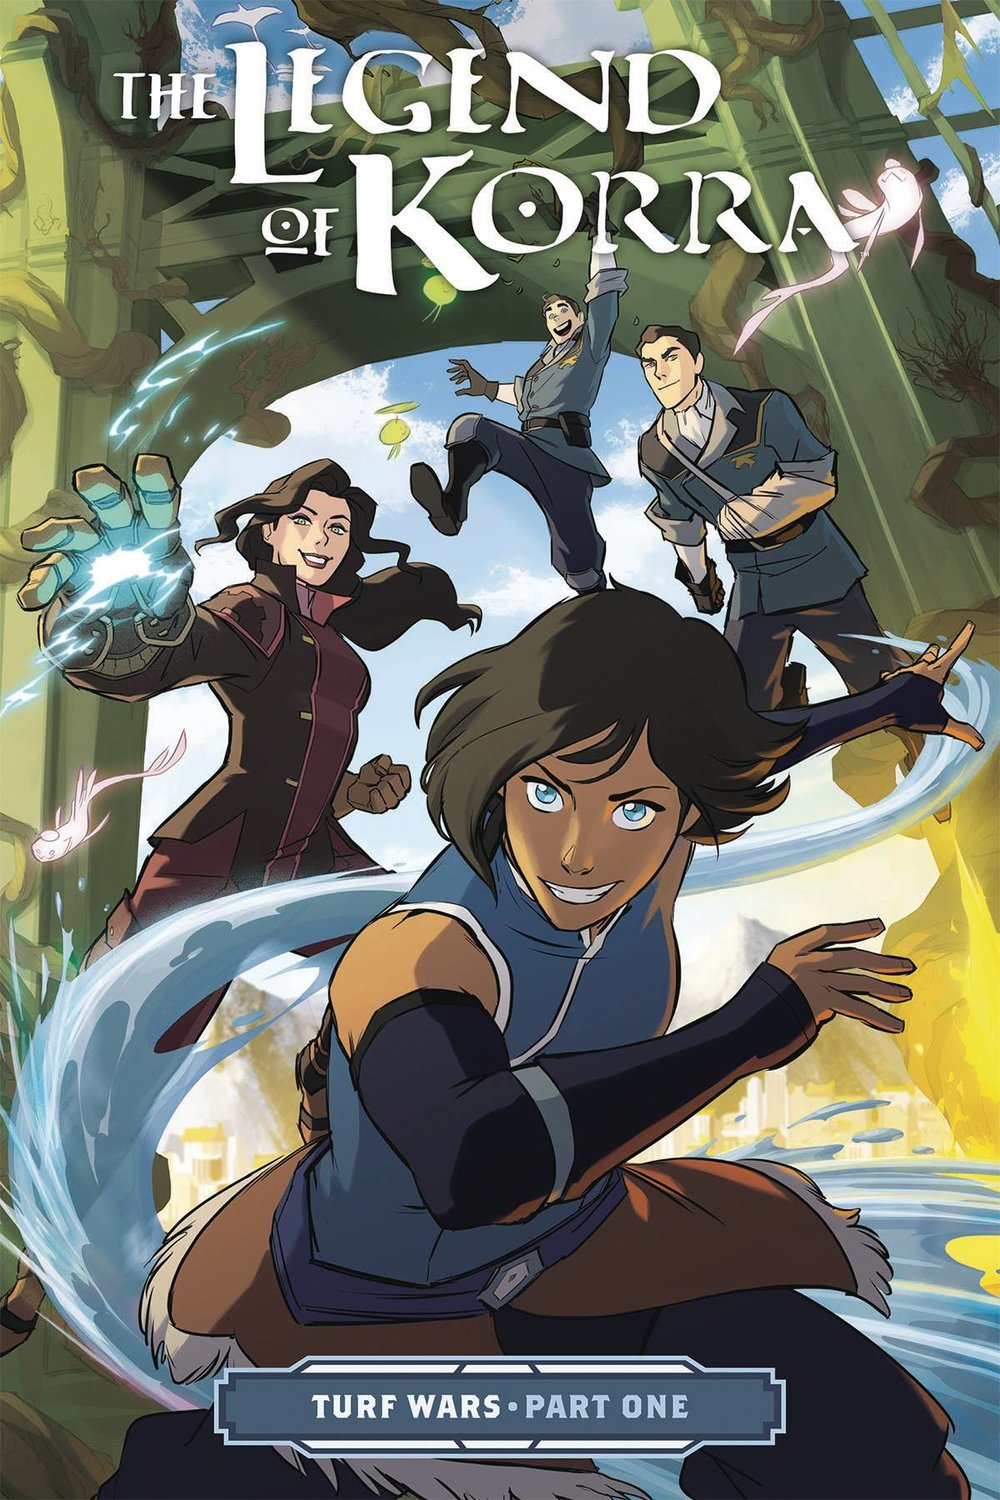 LEGEND OF KORRA TP 1 TURF WARS PT 1.jpg